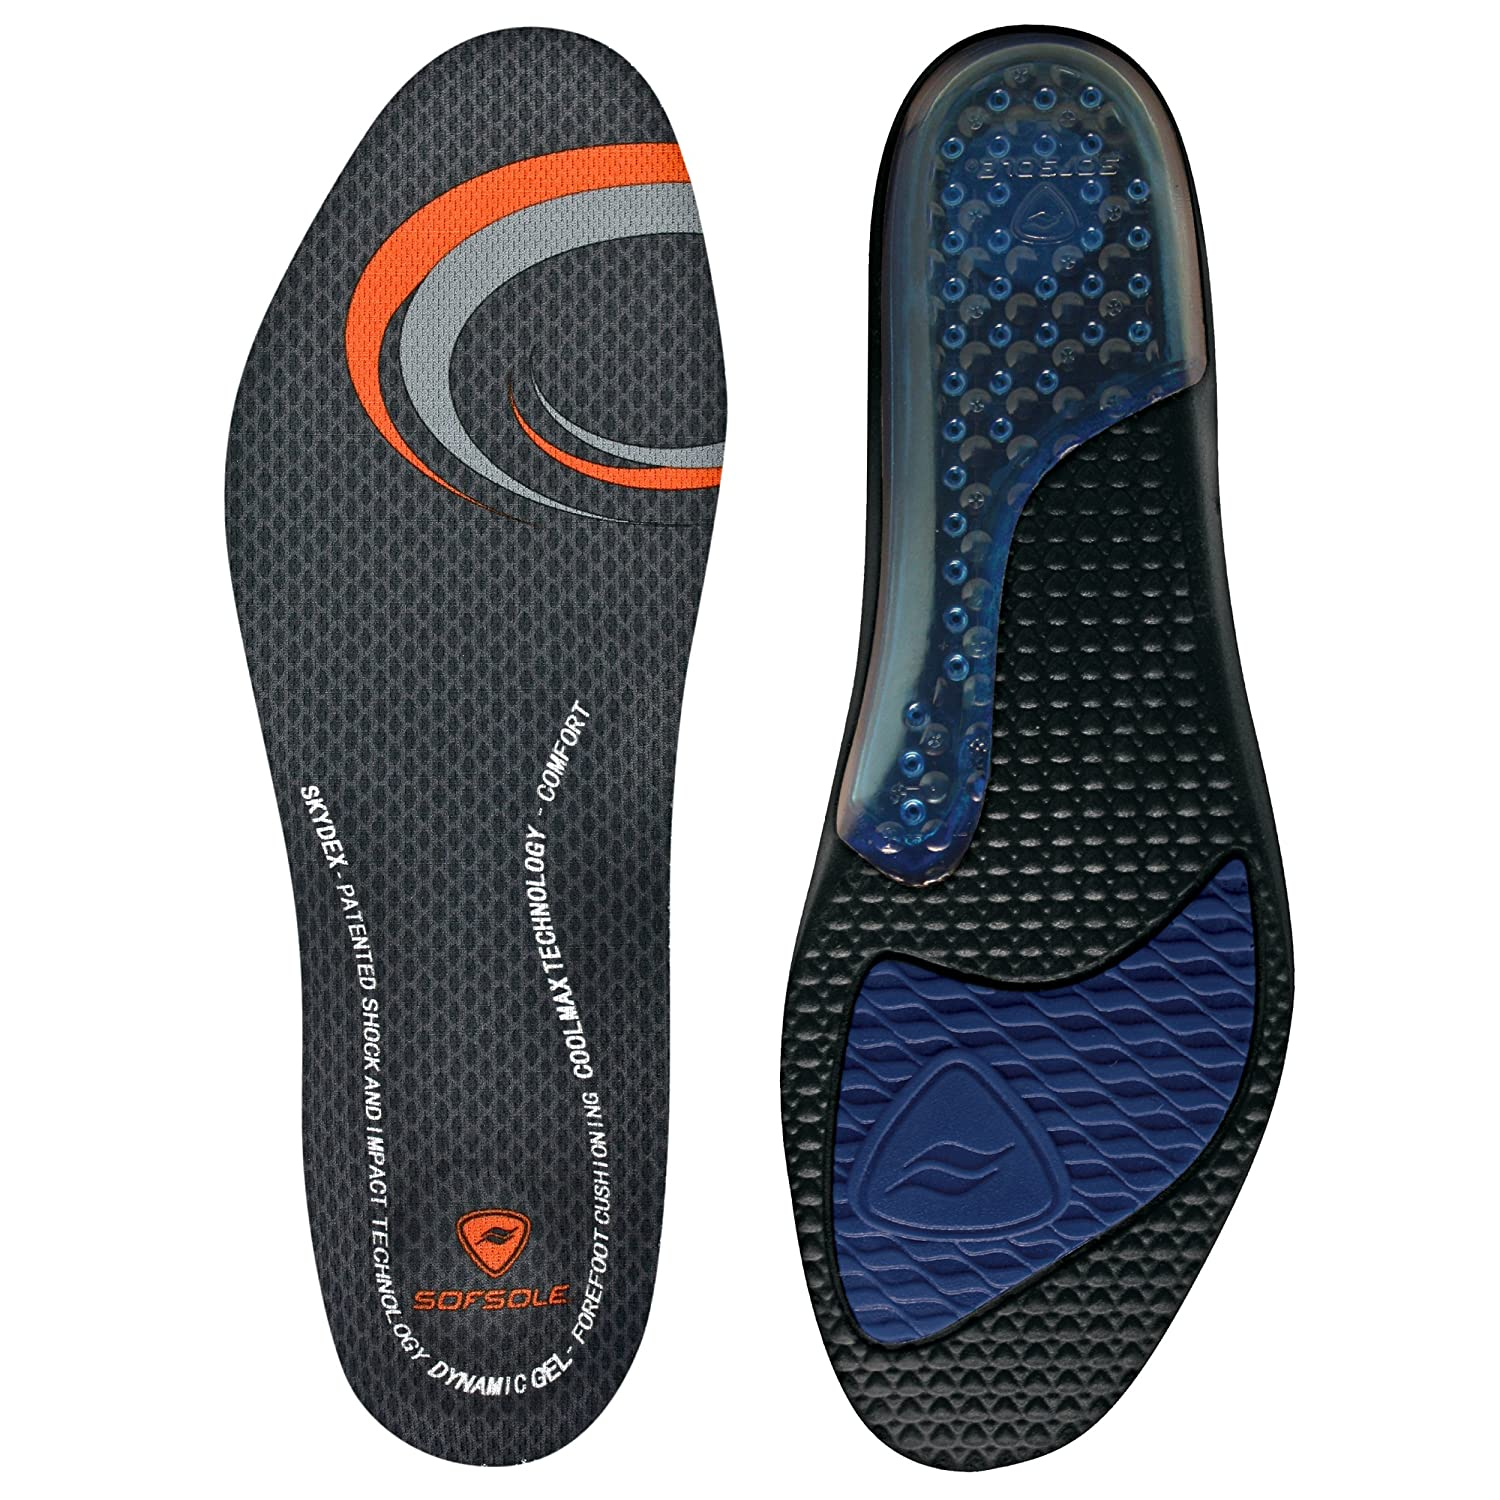 Top 5 Best Basketball Insoles For Plantar Fasciitis & Knee Pain (2021 Reviews) 1